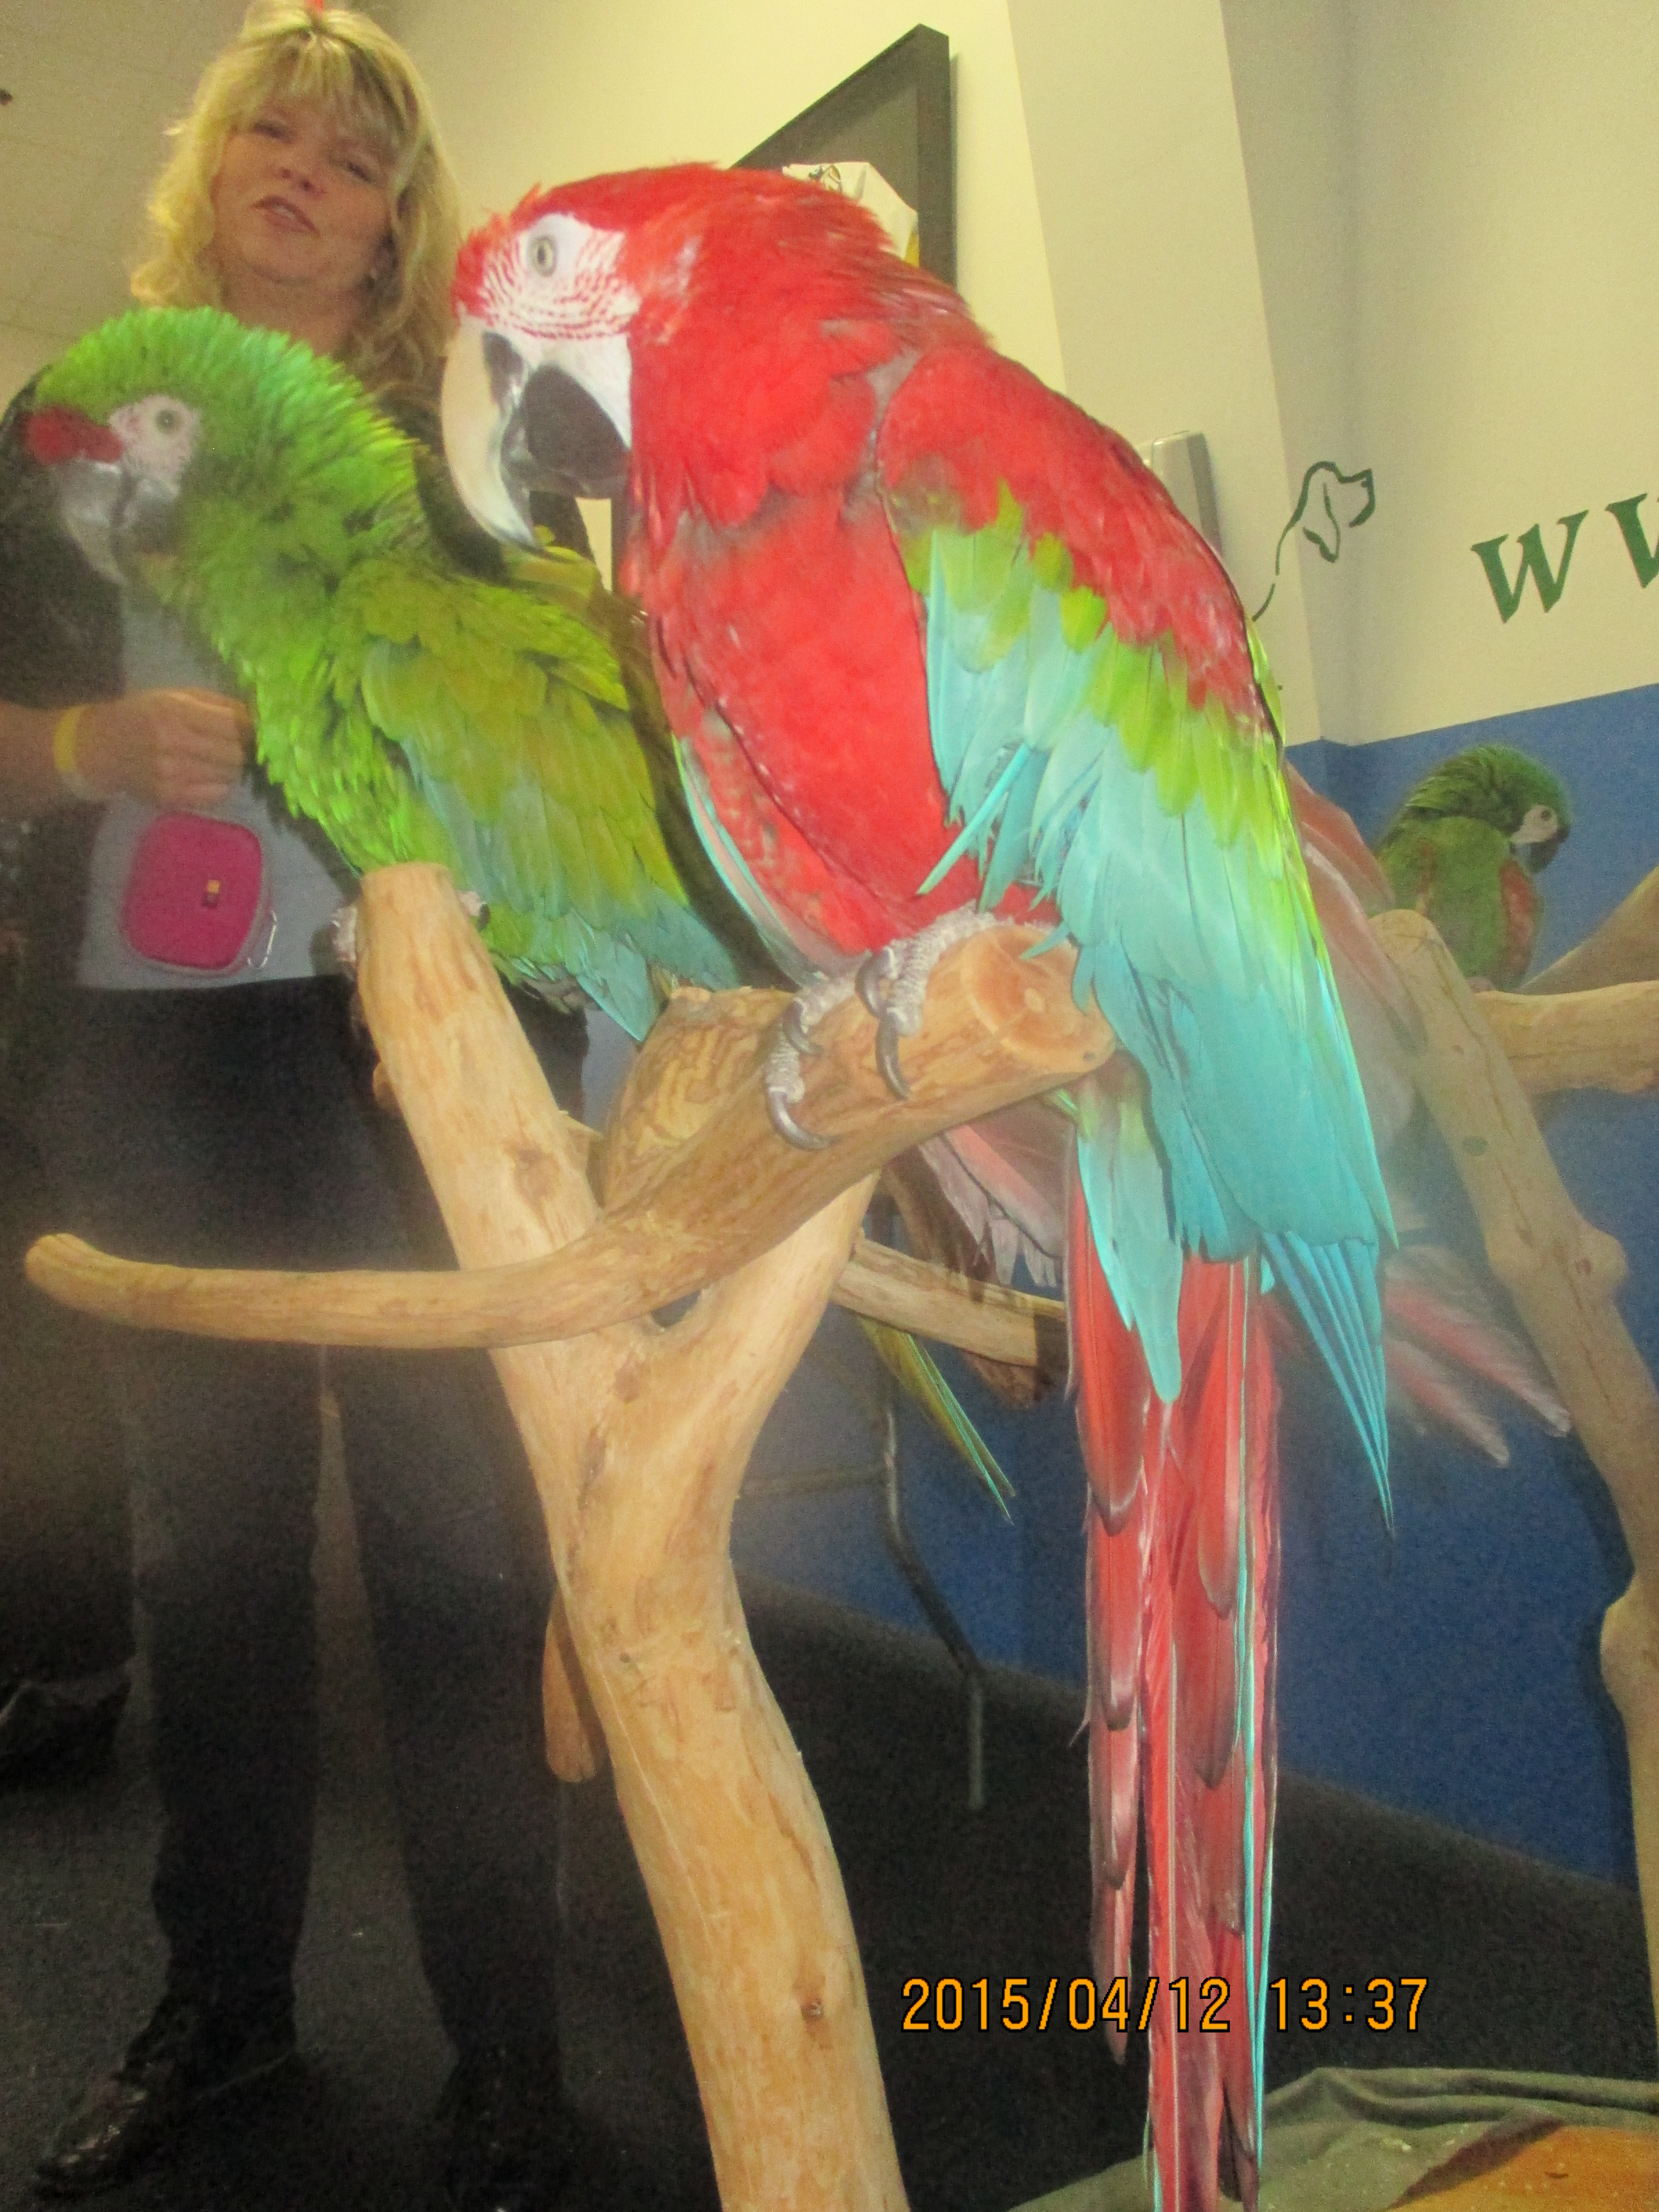 Parrot dating site